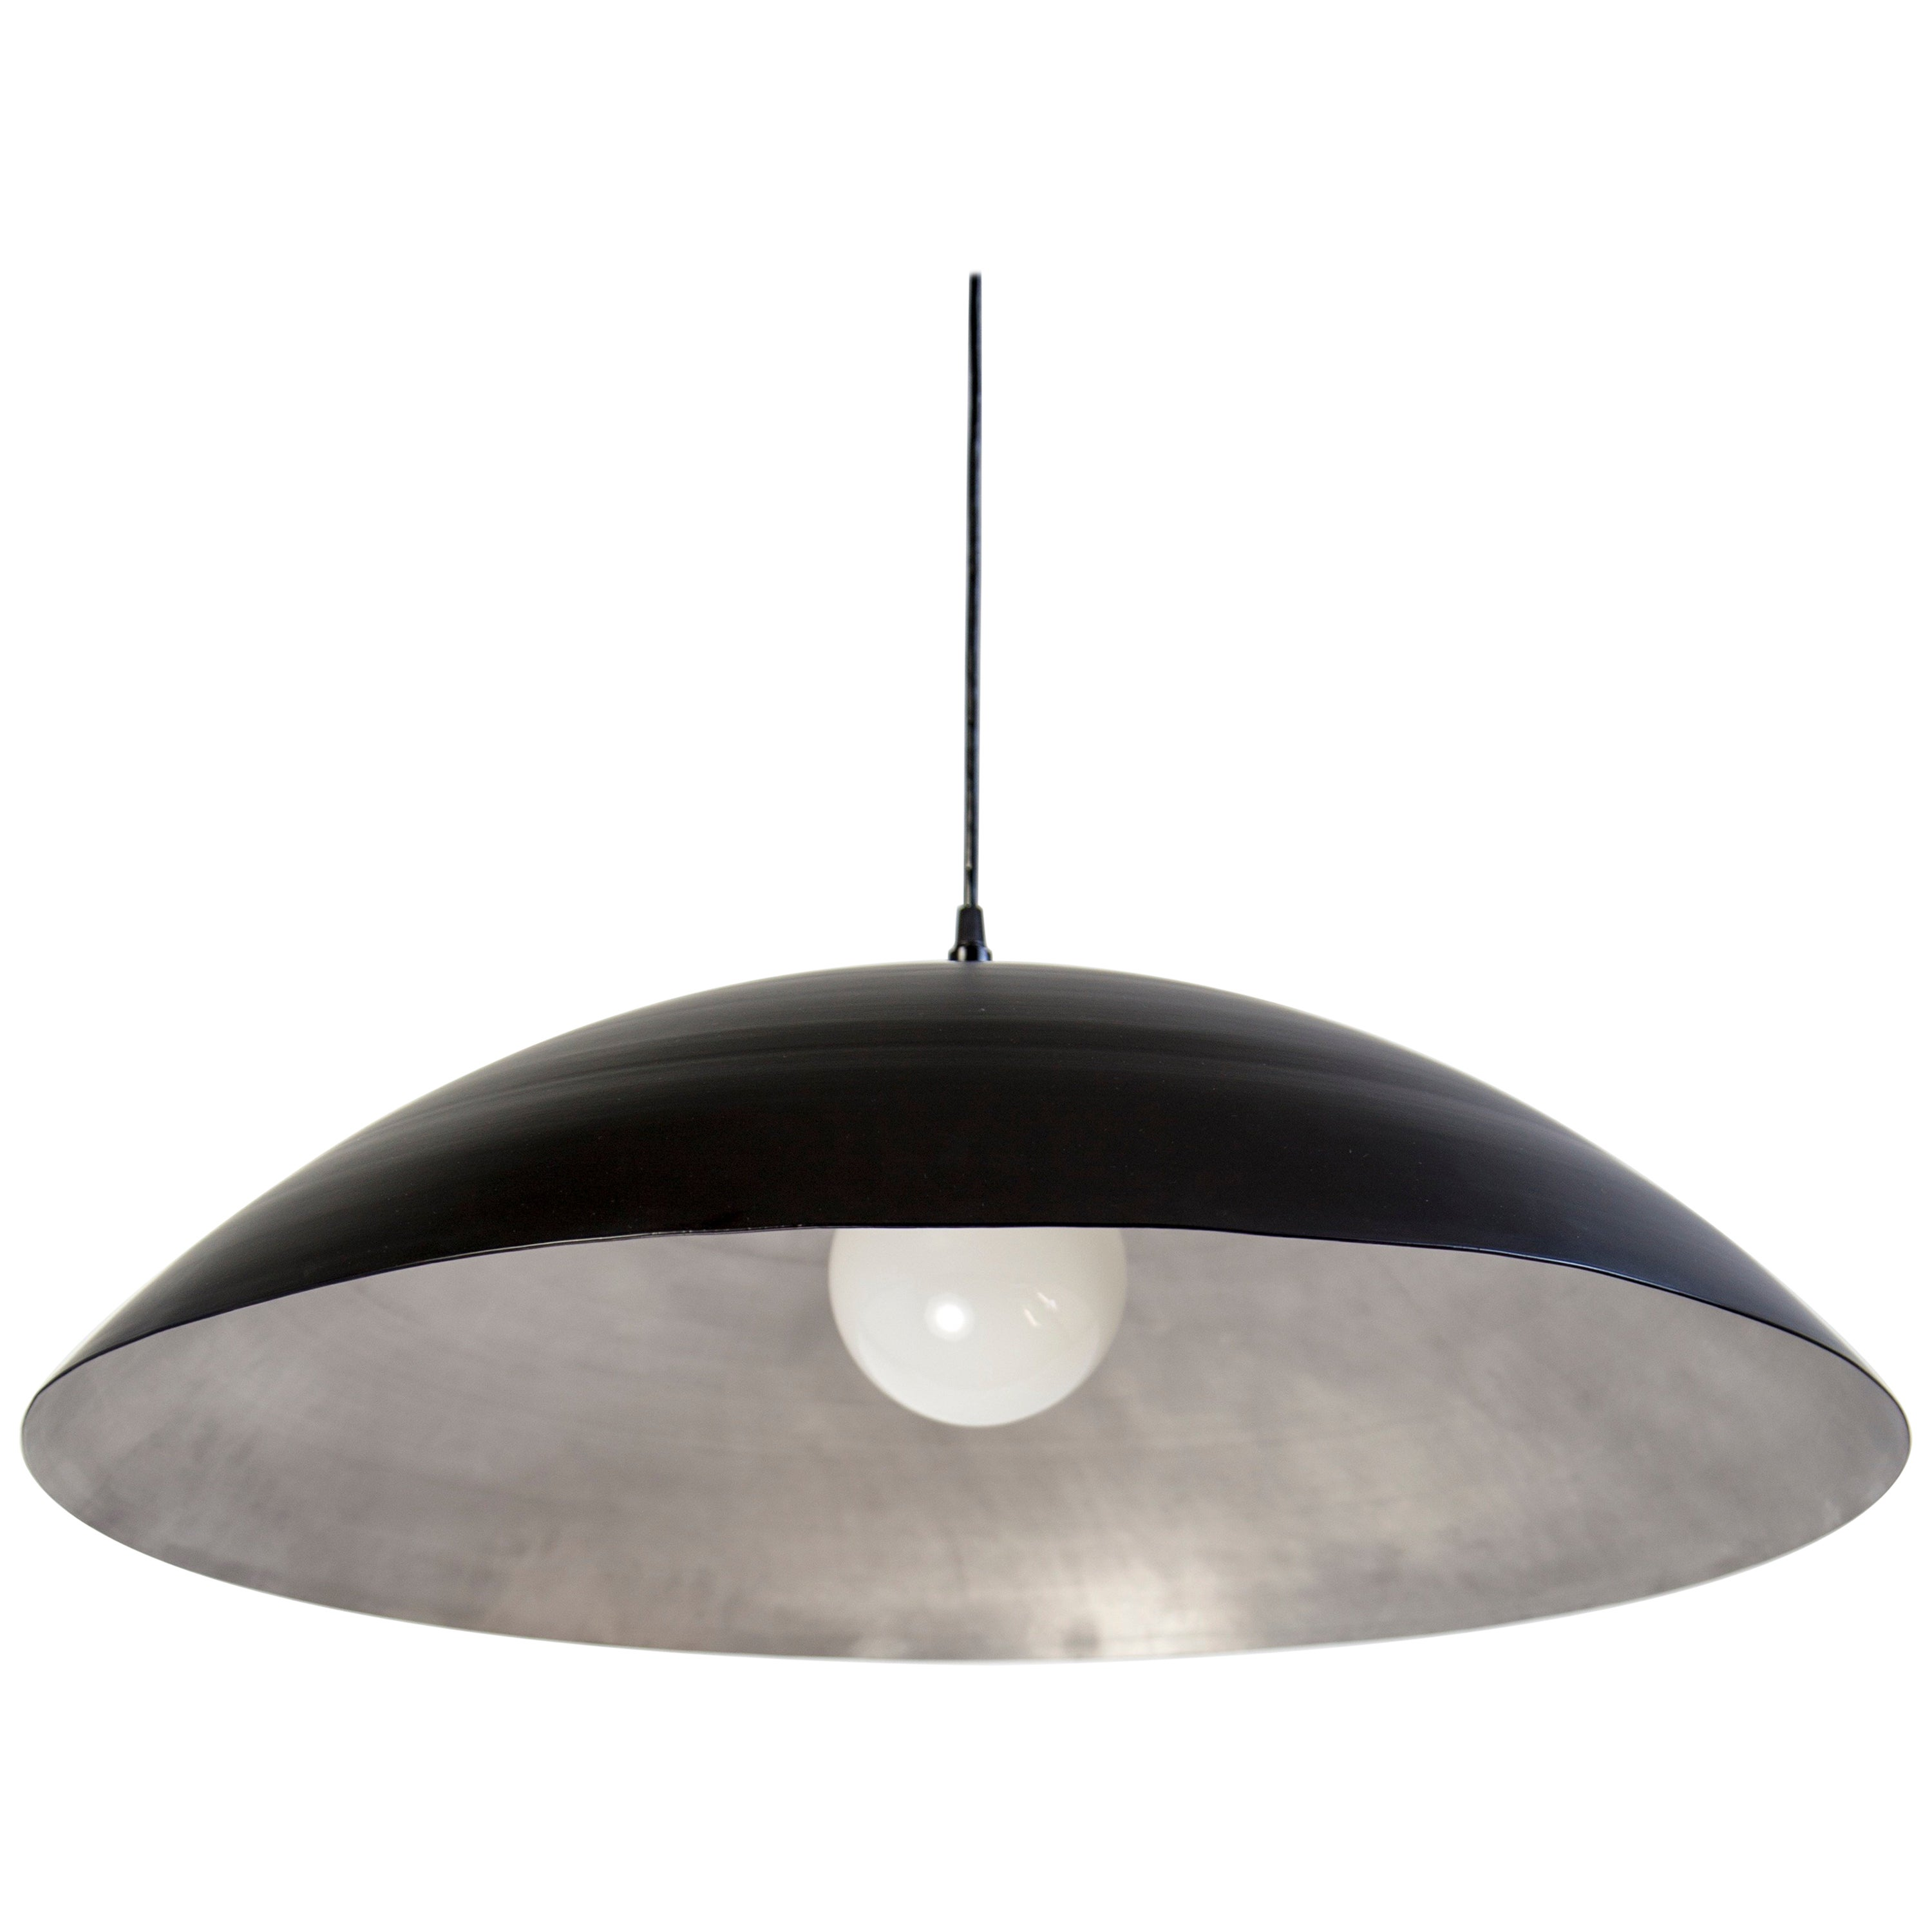 Super Customizable Huge Industrial Dome Pendant Lamp, Black and Silver PJ-28